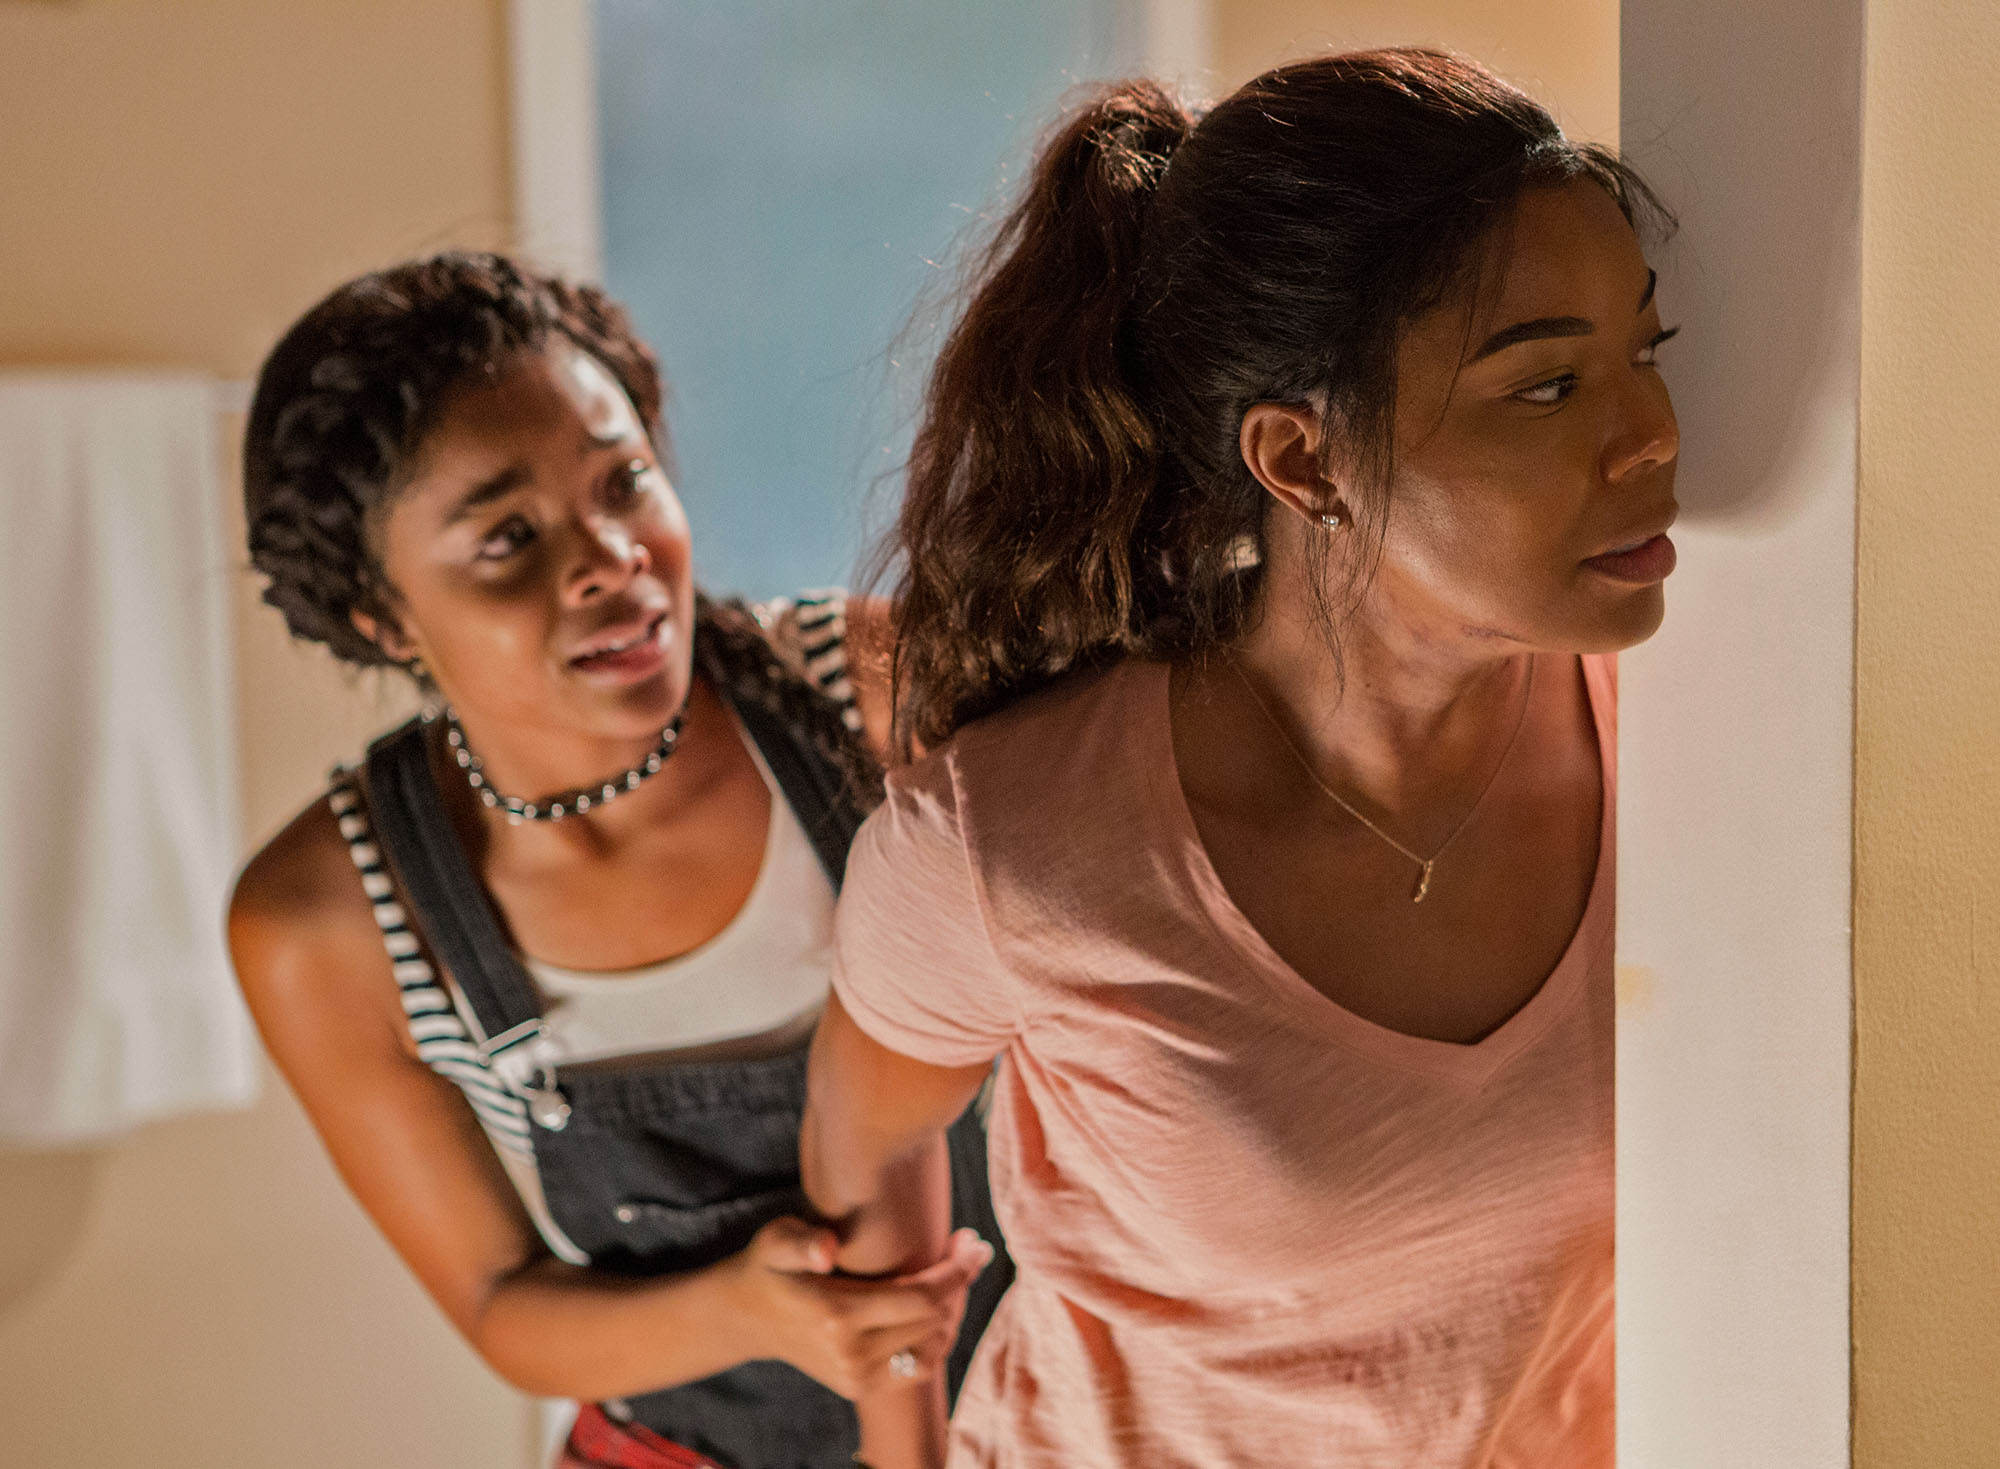 Gabrielle Union plays bad ass mom in new film 'Breaking In'